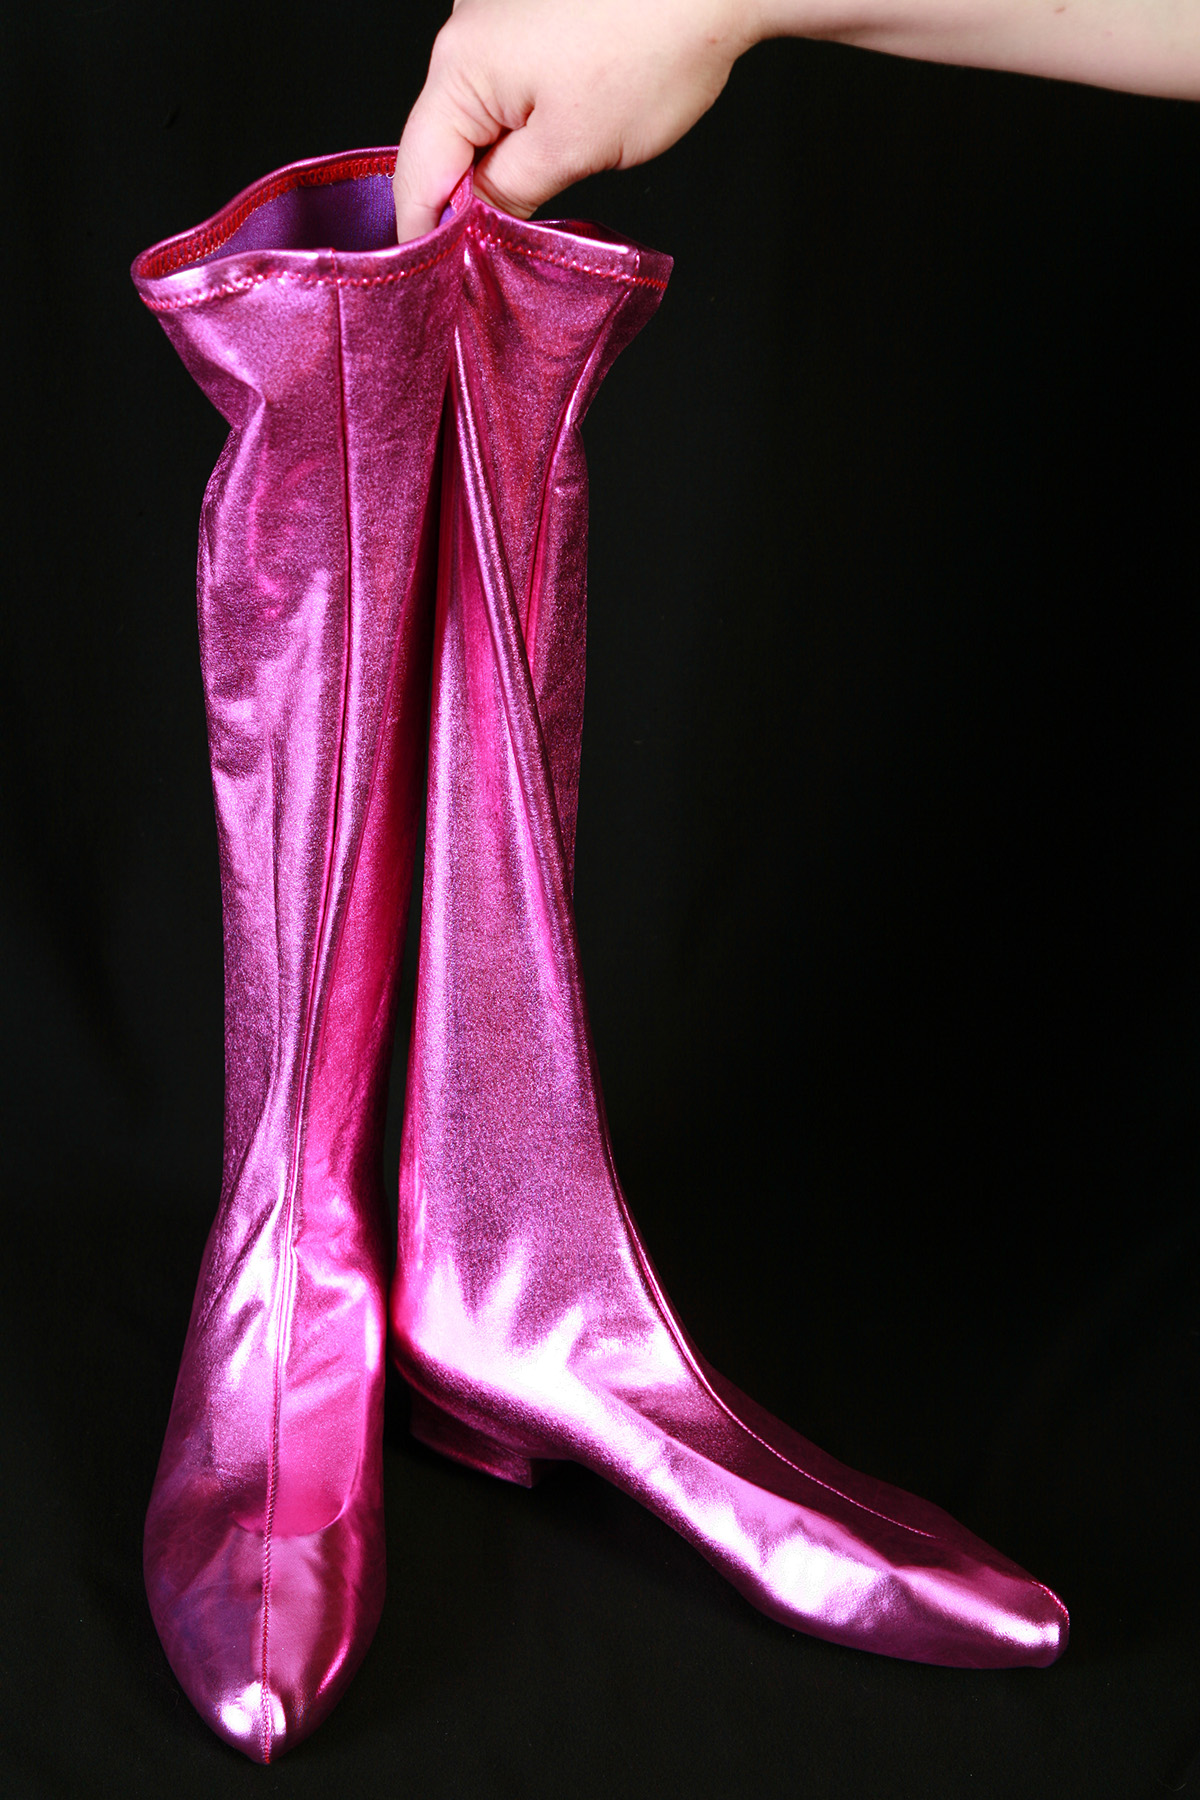 A pair of shiny purple spandex boot covers on a black background.